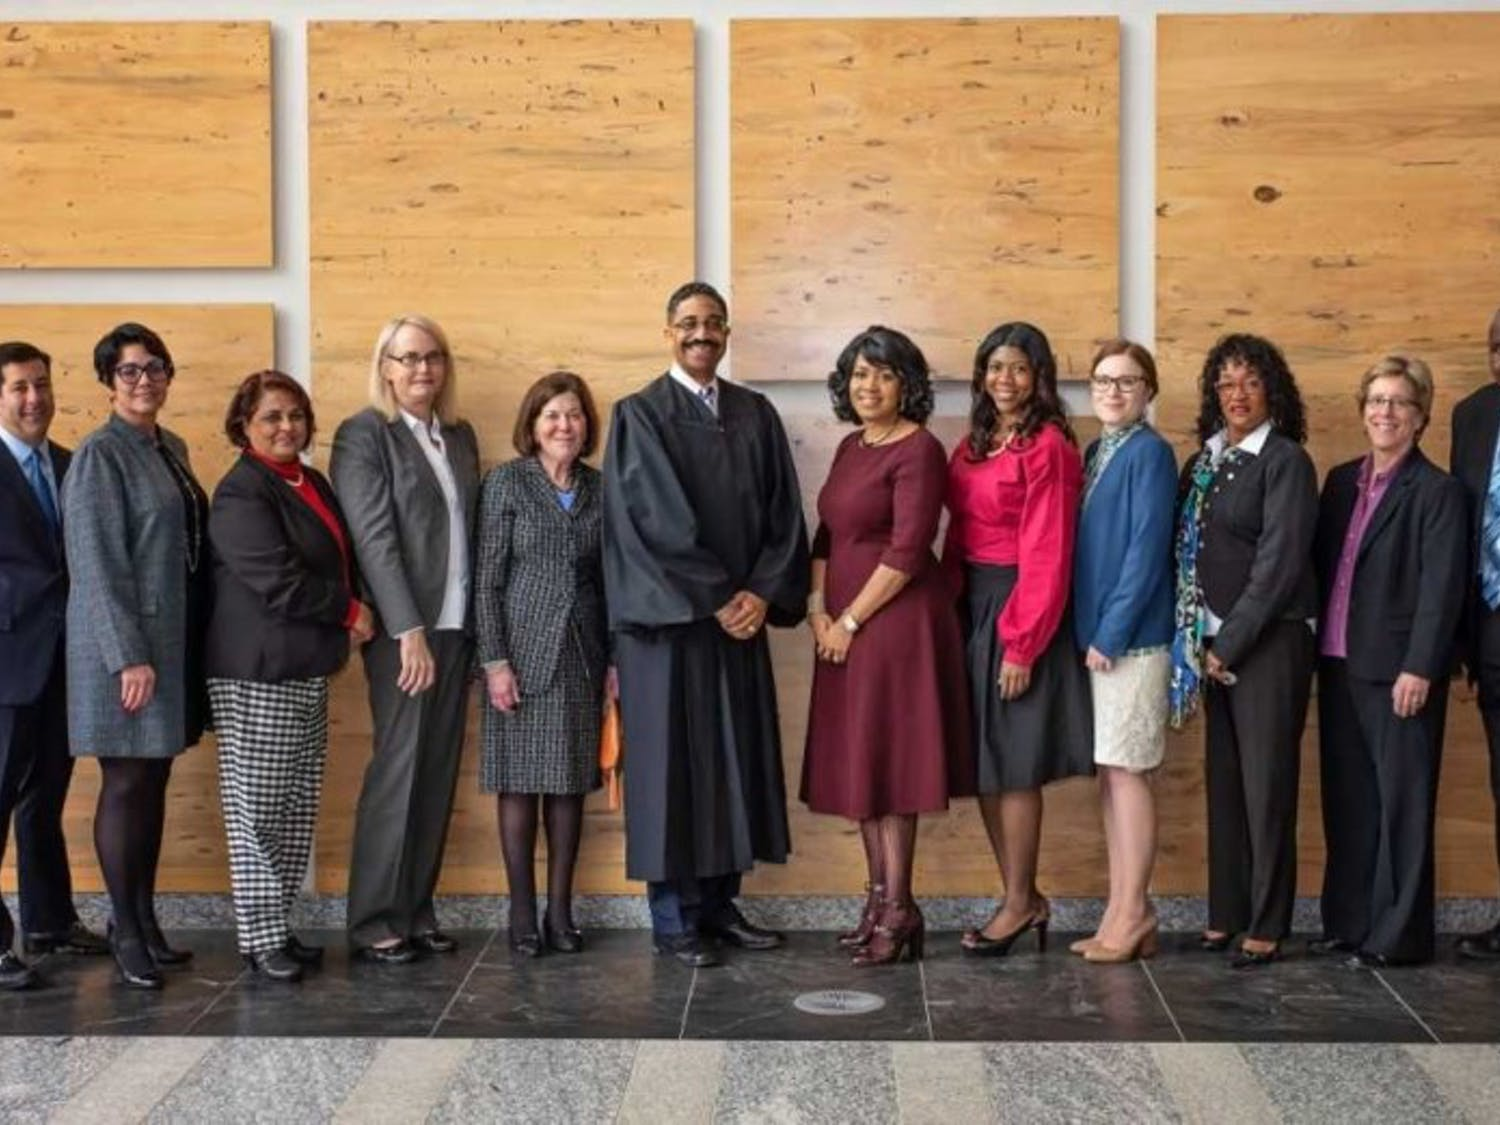 The North Carolina Commission on Inclusion was created by Governor Roy Cooper in 2017. Photo courtesy of Lydia Lavelle.